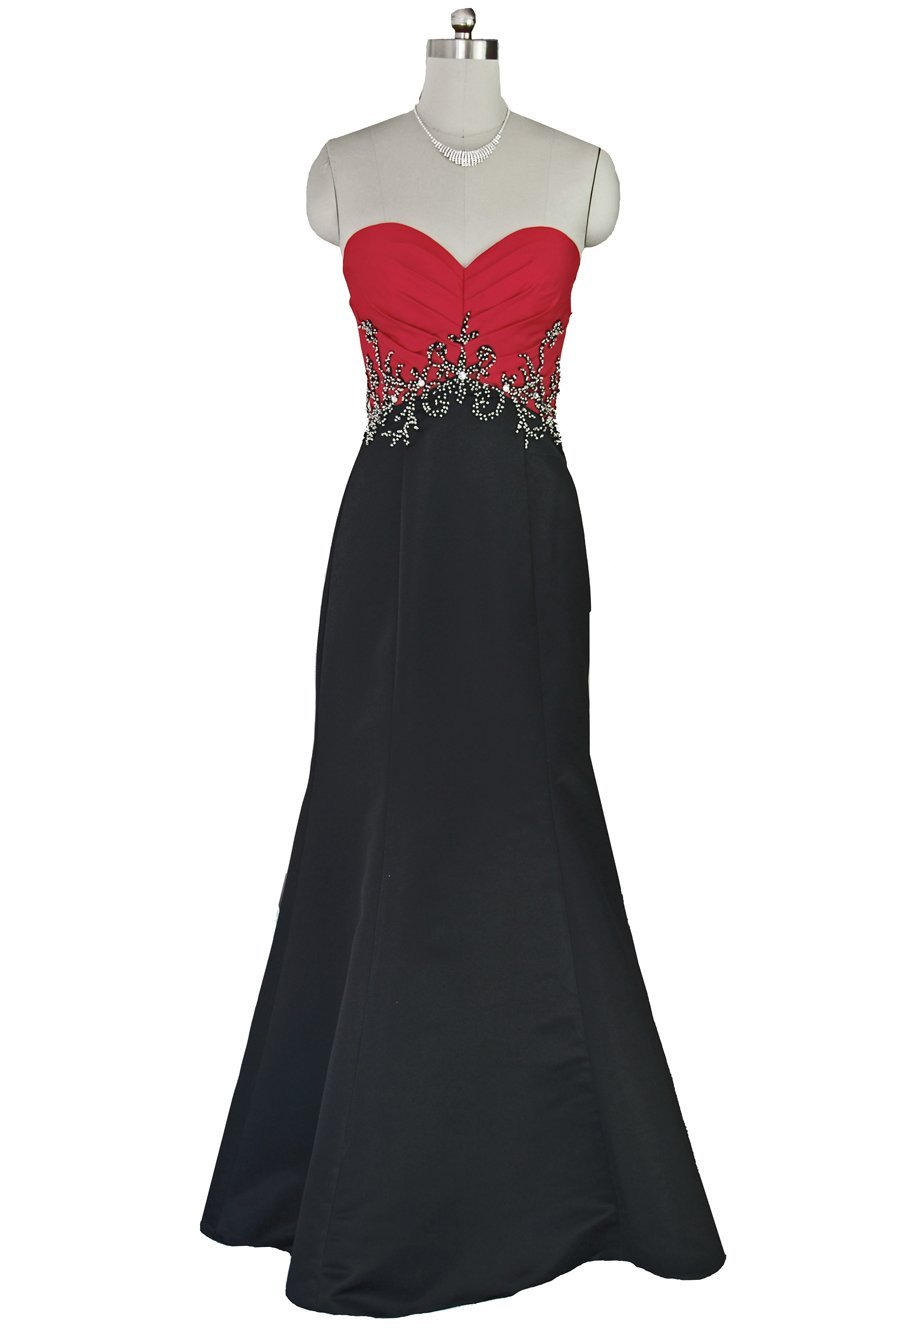 Qpid-Showgirl-Red-Black-two-tone-fishtail-long-evening-dress 19 Special Collection of Long Black Dresses